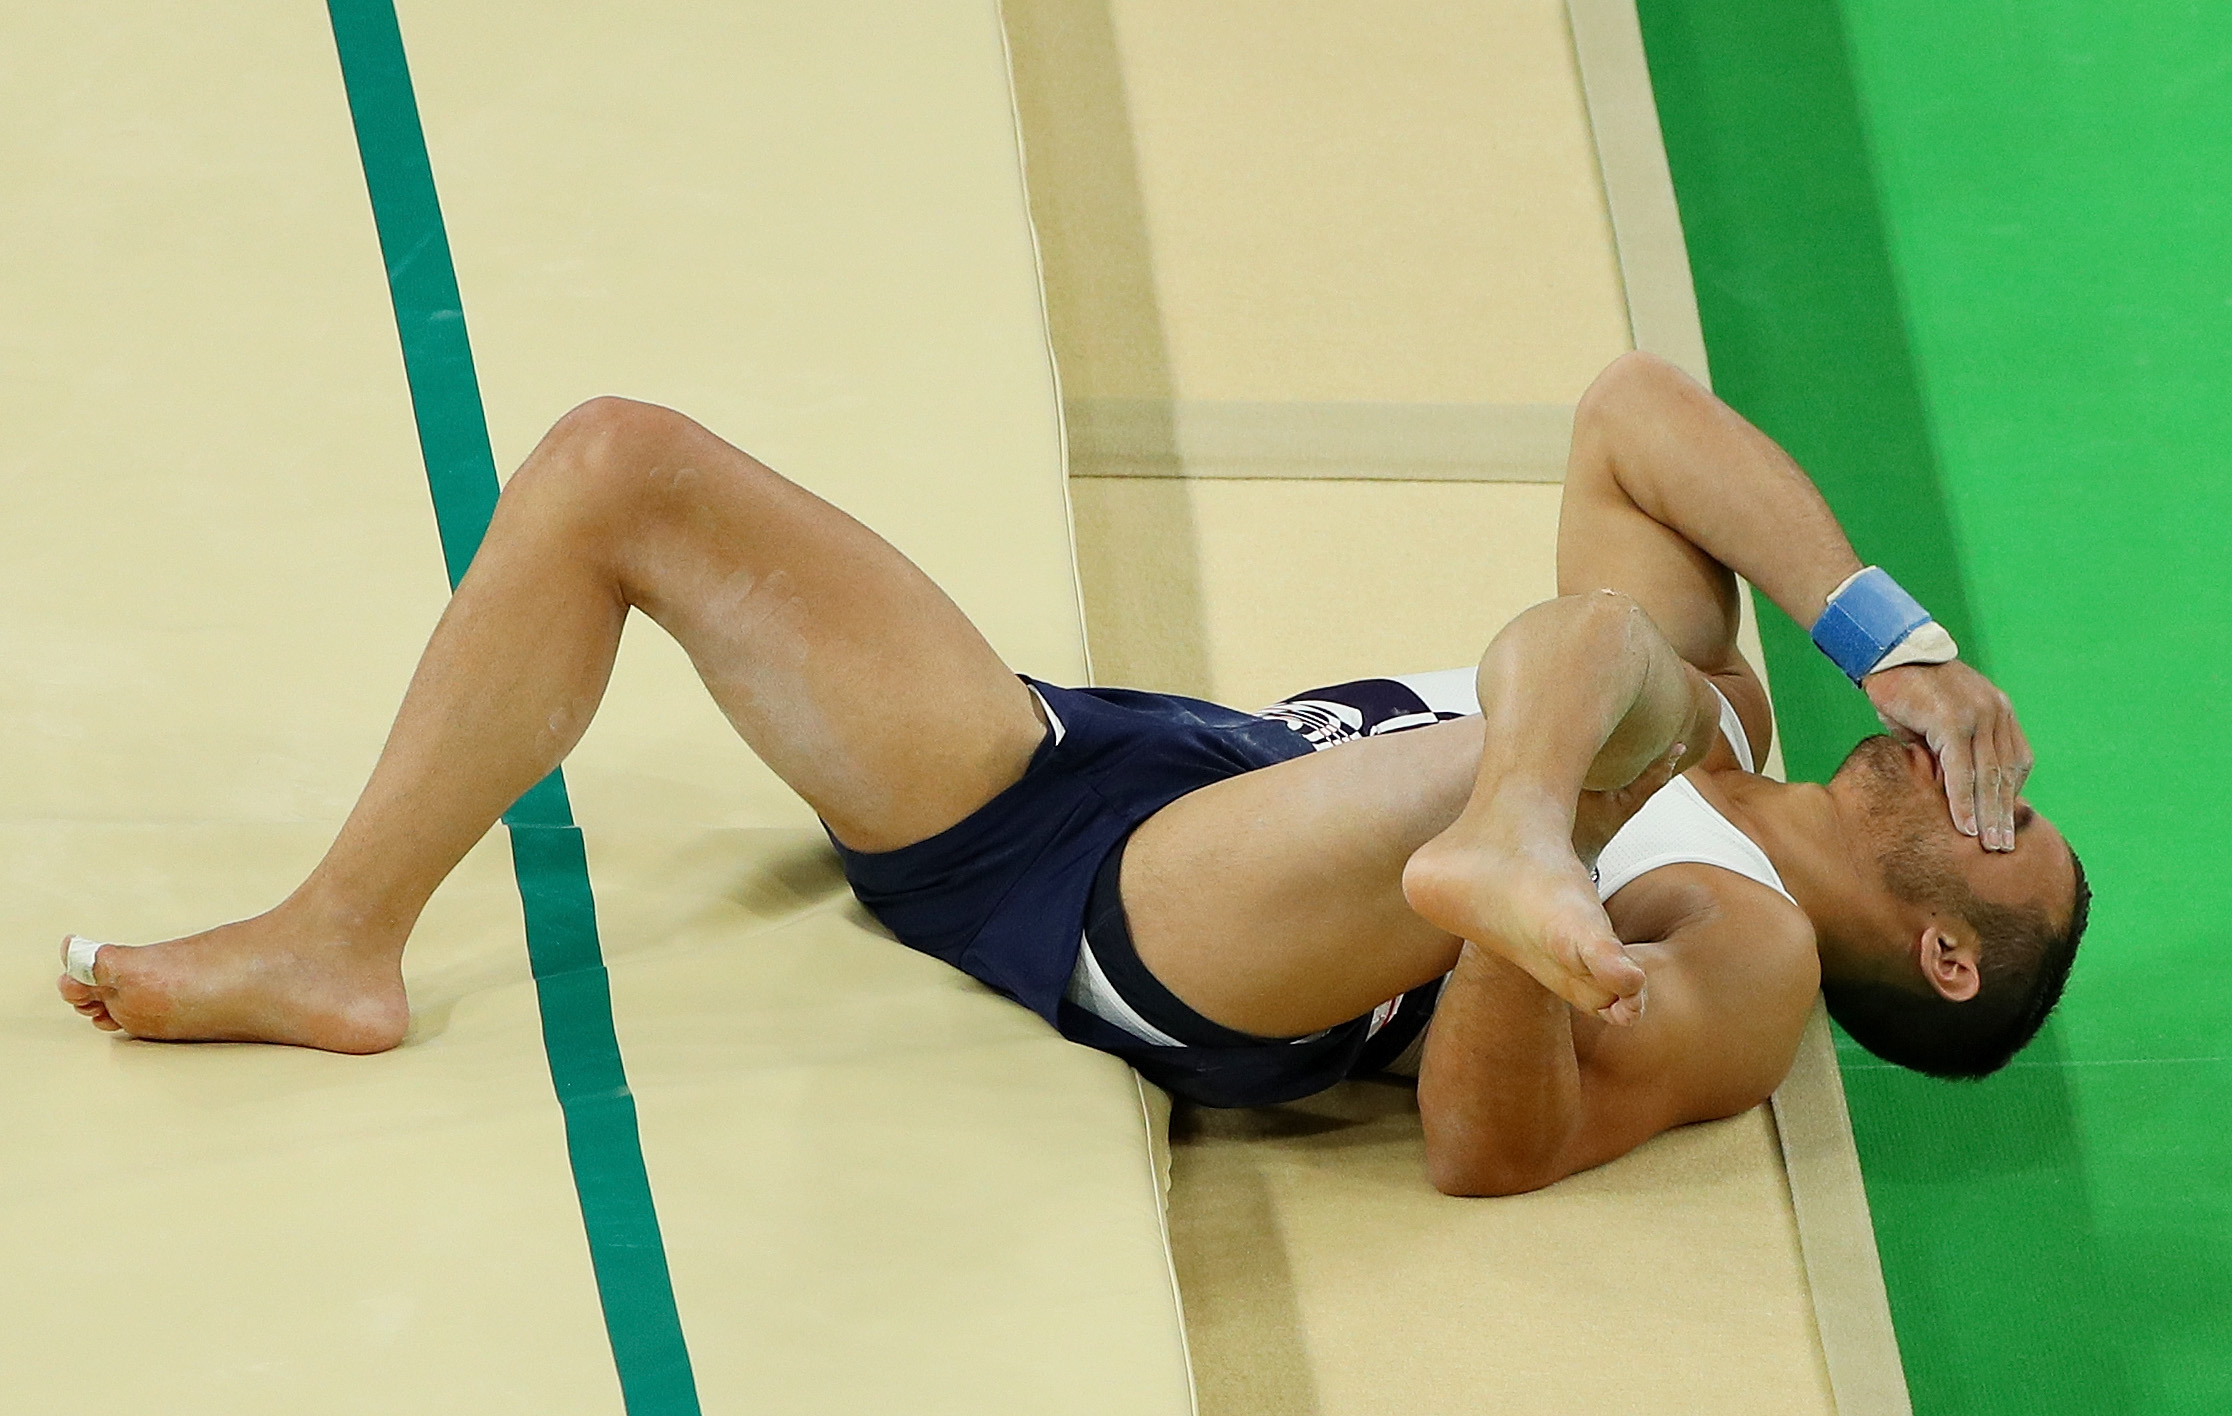 French Athlete Samir Ait Said Breaks His Leg During Vault on Opening Day of Rio Olympics 2016